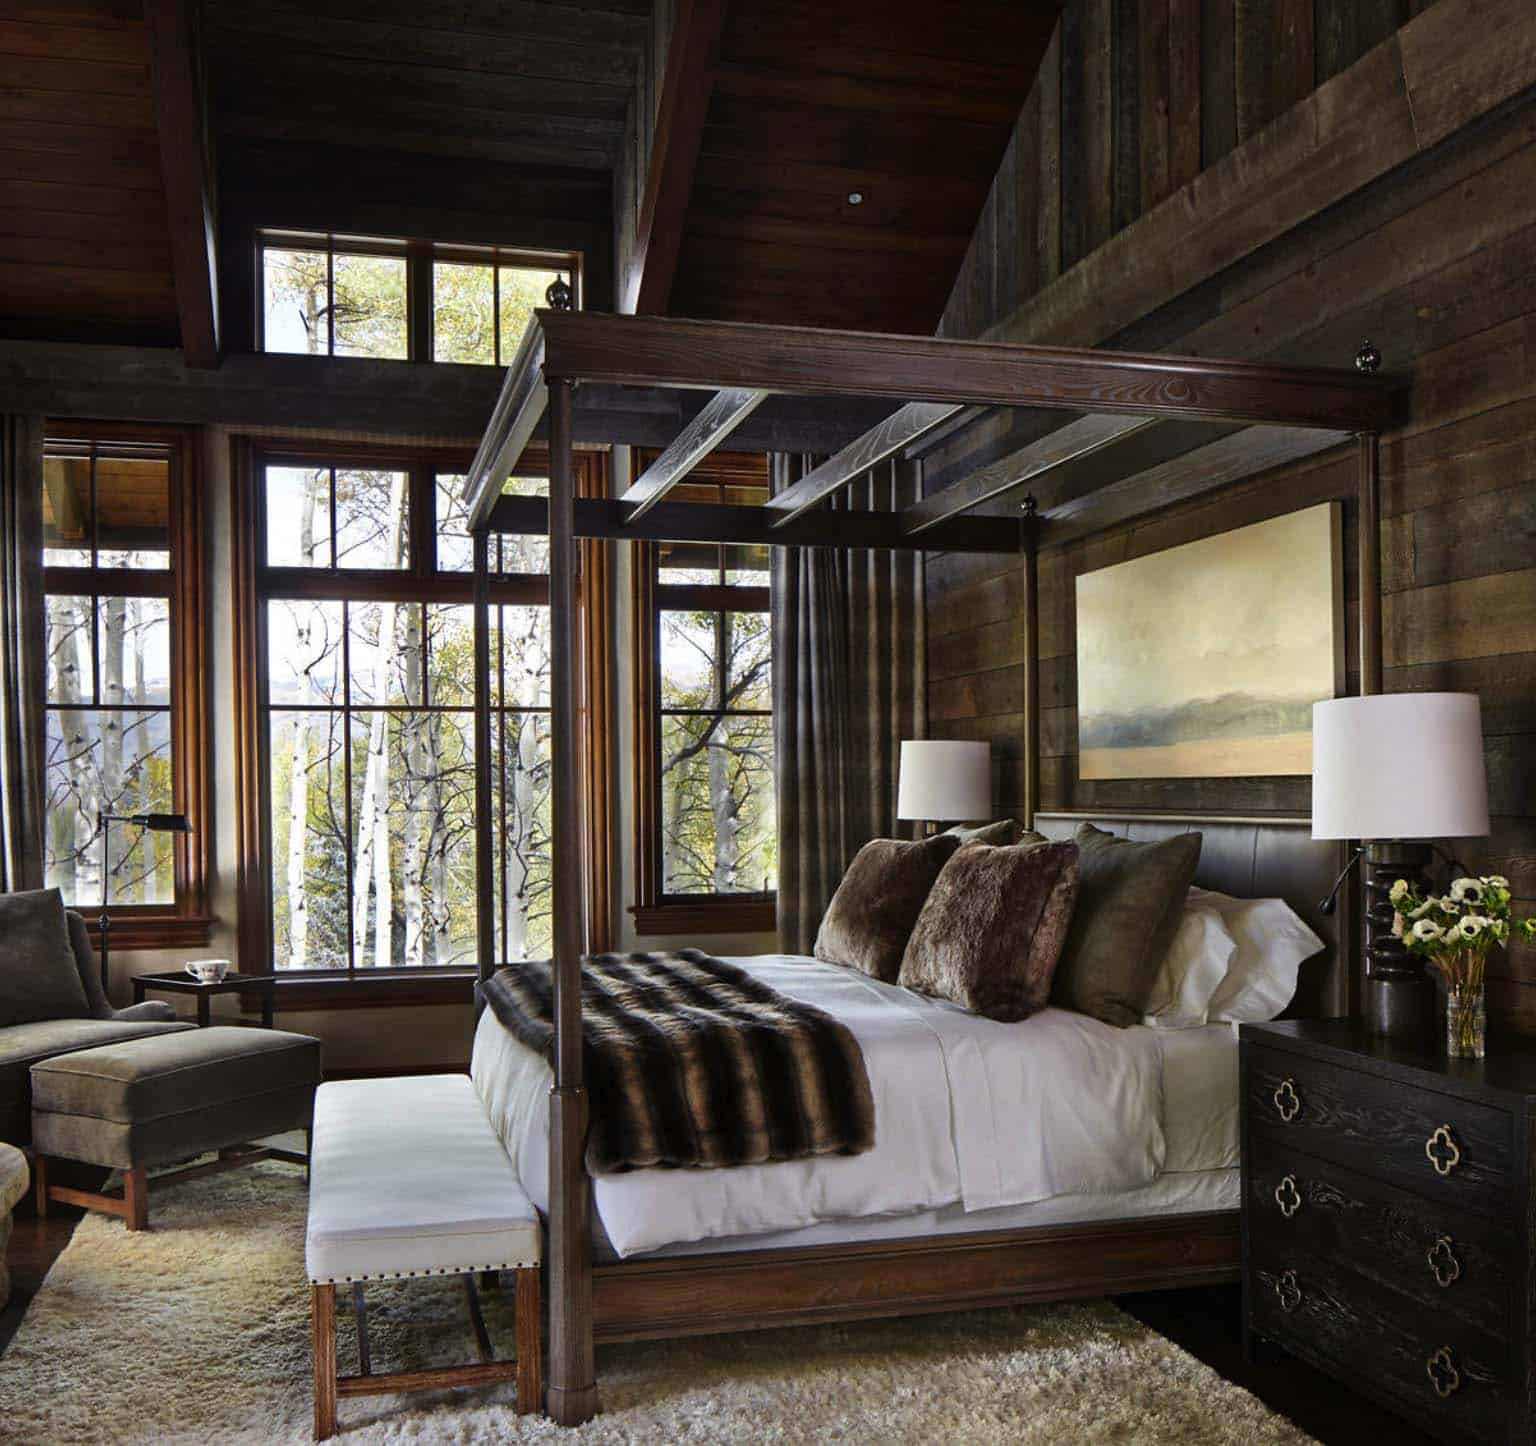 Amazing Interior Design Pic1: 40 Amazing Rustic Bedrooms Styled To Feel Like A Cozy Getaway